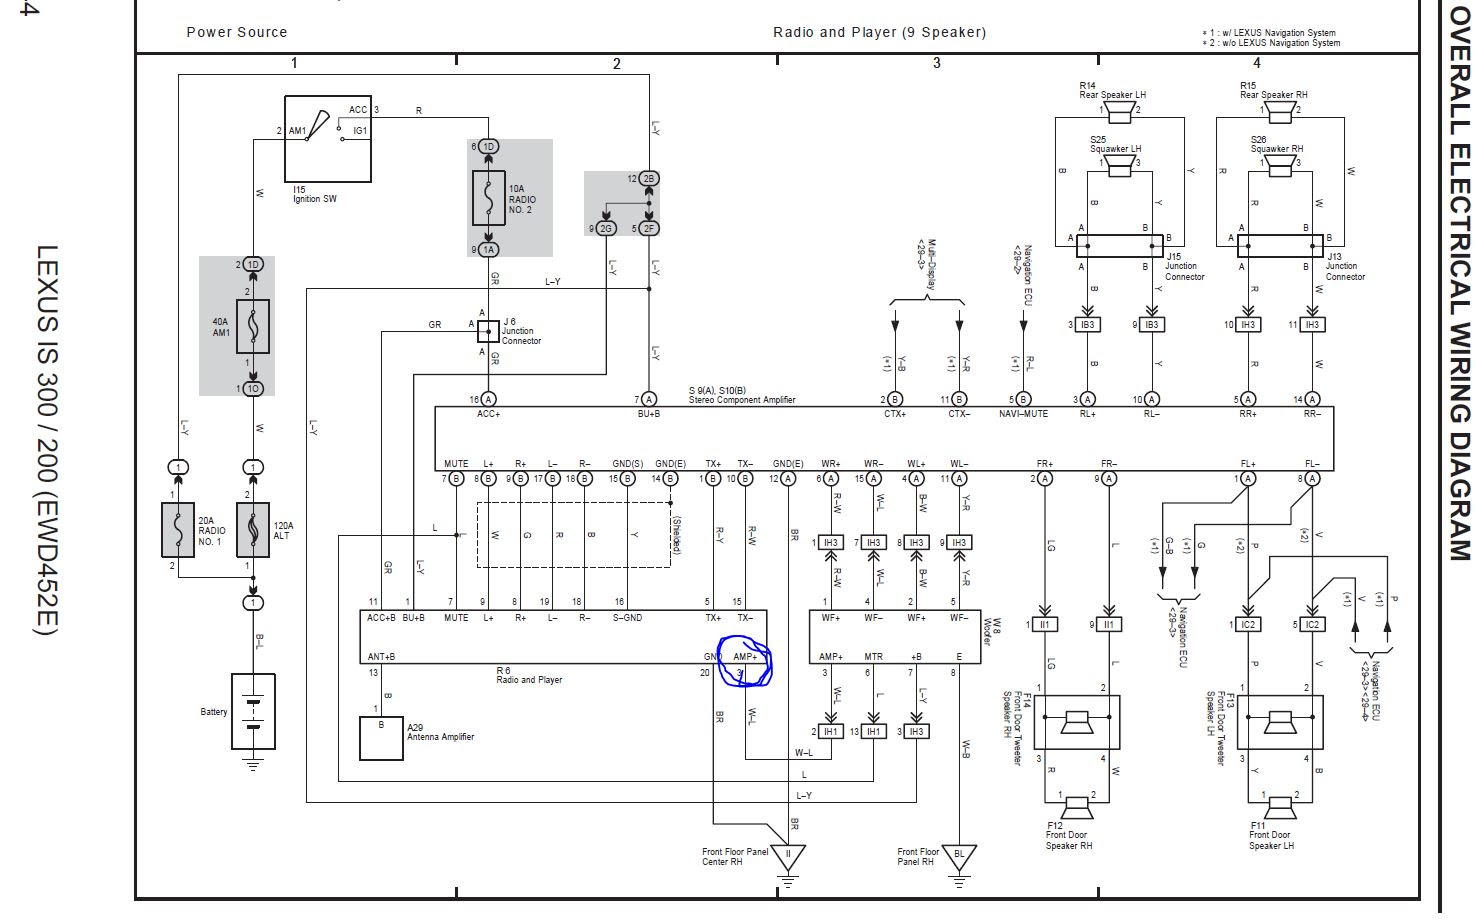 1999 Lexus Is 200 Electrical Wiring Diagram Full Hd Version Wiring Diagram Vadidiagram Cabinet Accordance Fr